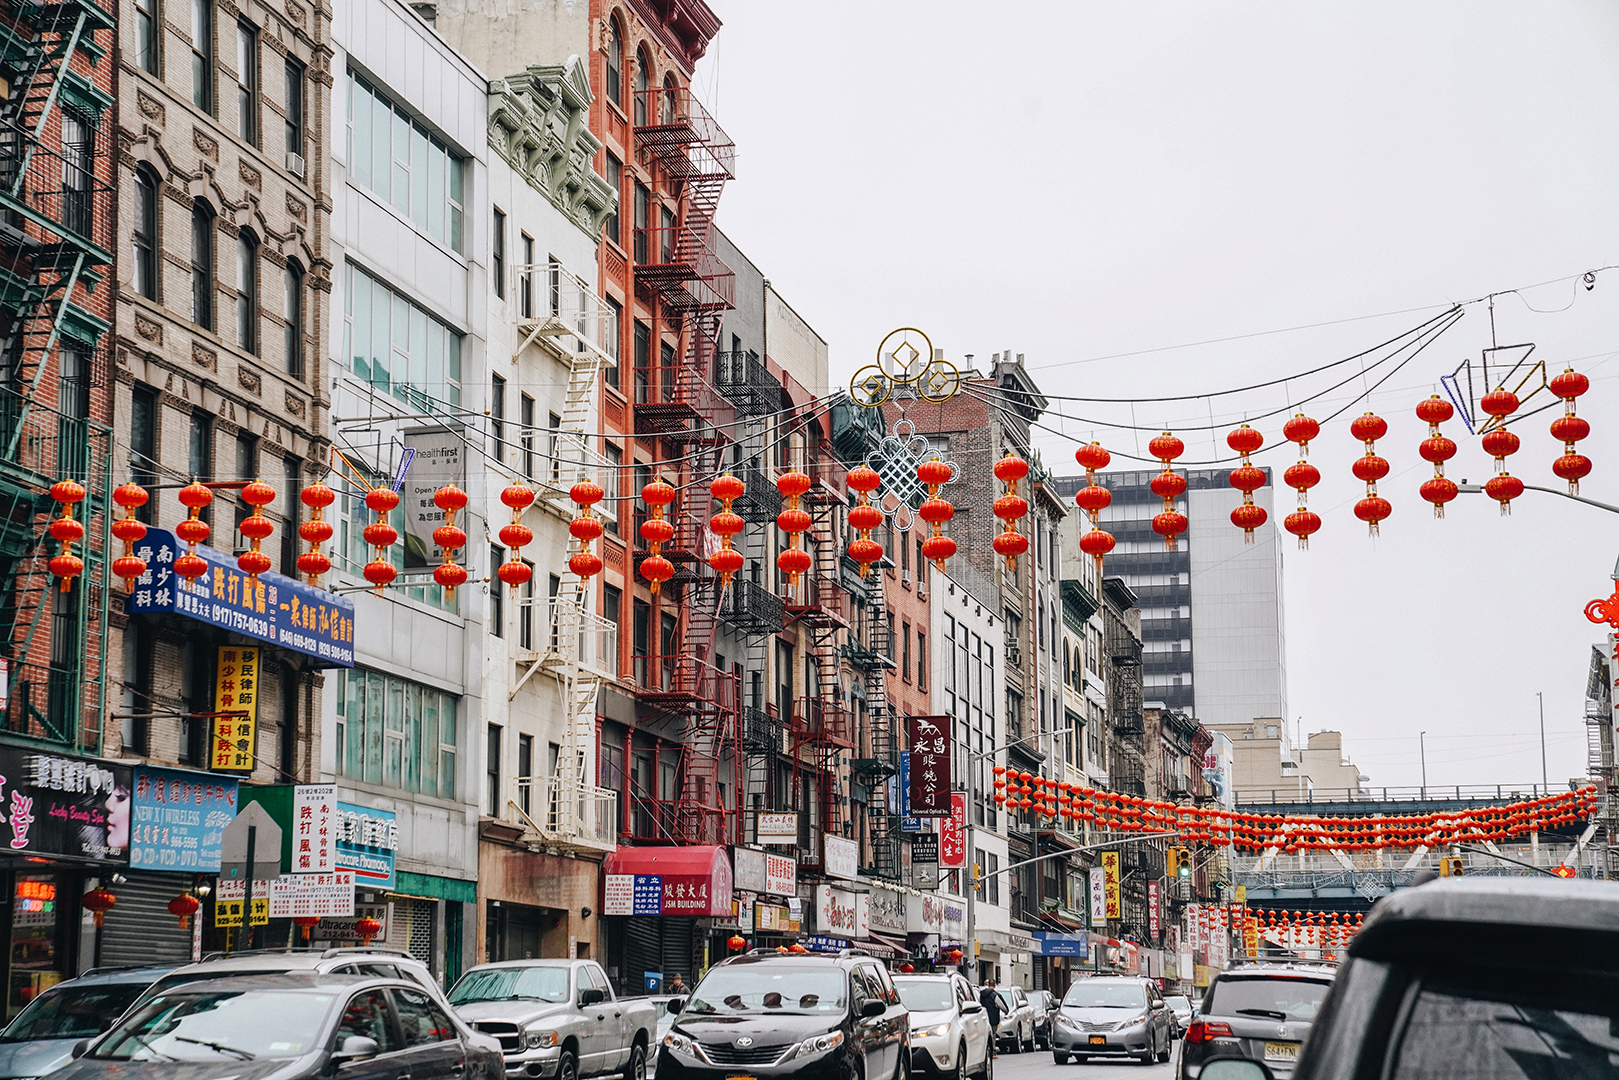 Chinatown, New York.